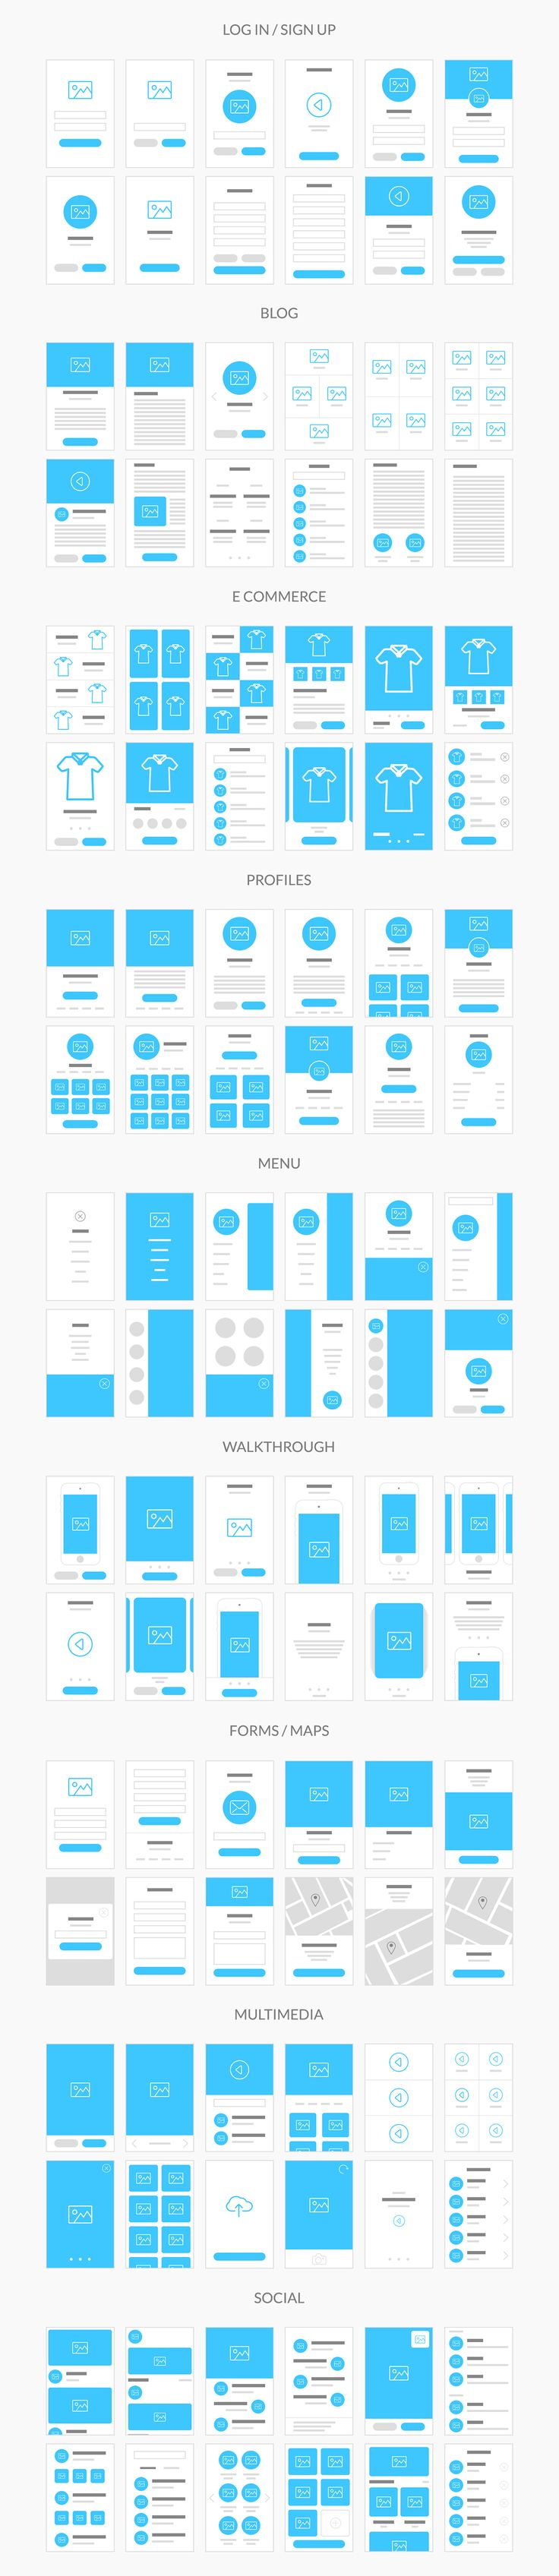 Flowy is made with fast workflow in mind, so we created 236 ready to use templates, built on the 1170 grid and in Photoshop file format. You can create flowcharts for both mobile and web projects of any complexity and show them to your team or clients in �